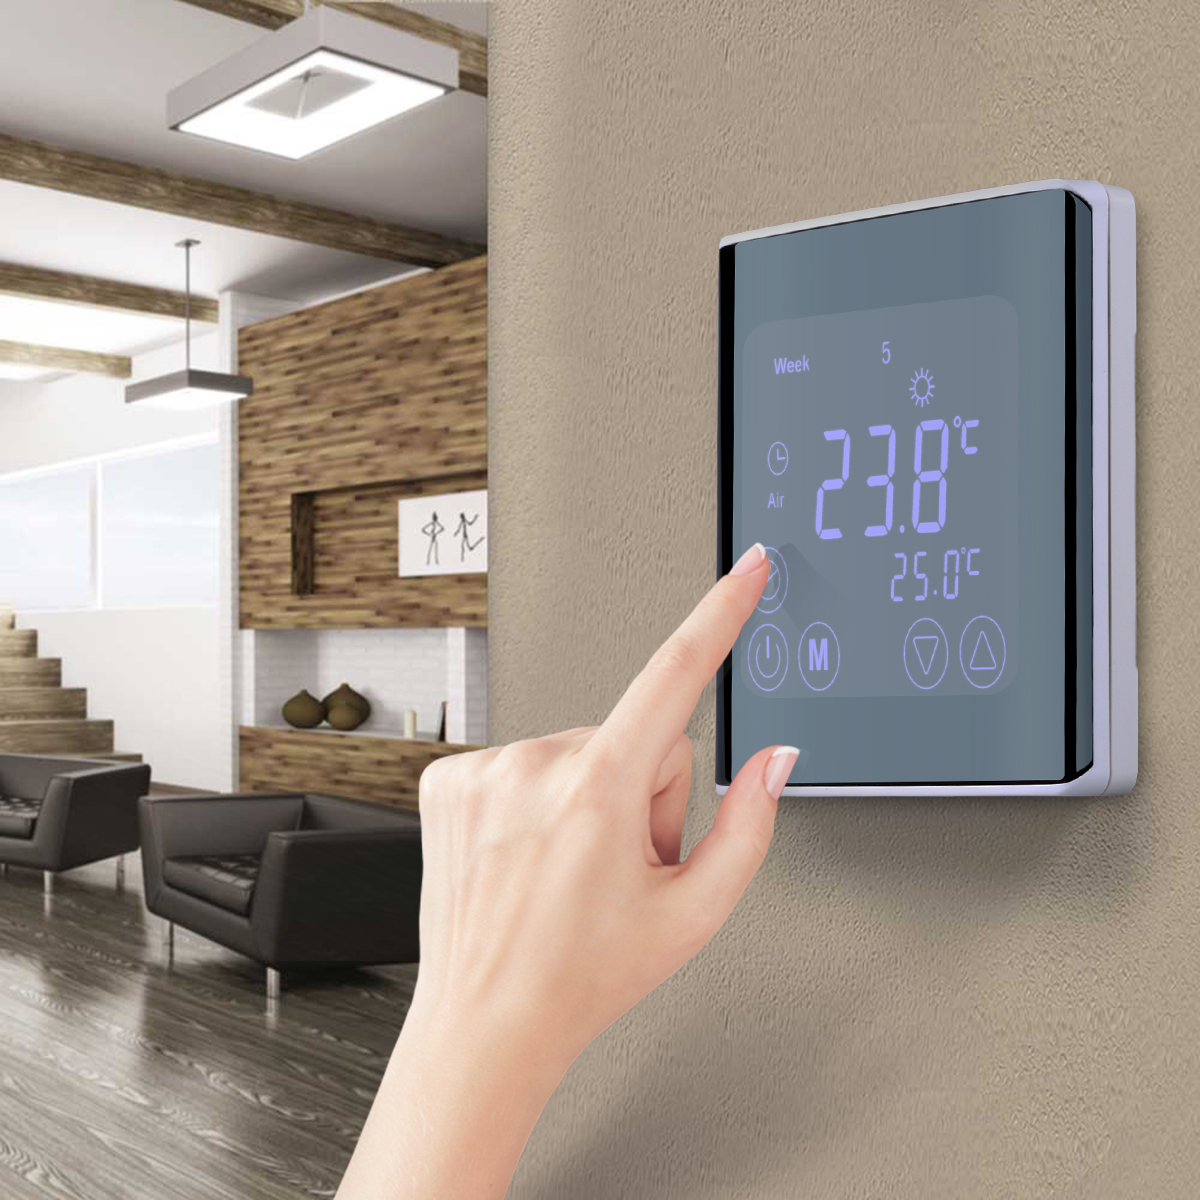 Weekly Programmable Underfloor Heating Thermostat LCD Touch Screen Room Temperature Controller Thermostat White Backlight touch screen thermostat electric thermostat room thermostat underfloor heating programmable thermostat 16a v8 716 switch